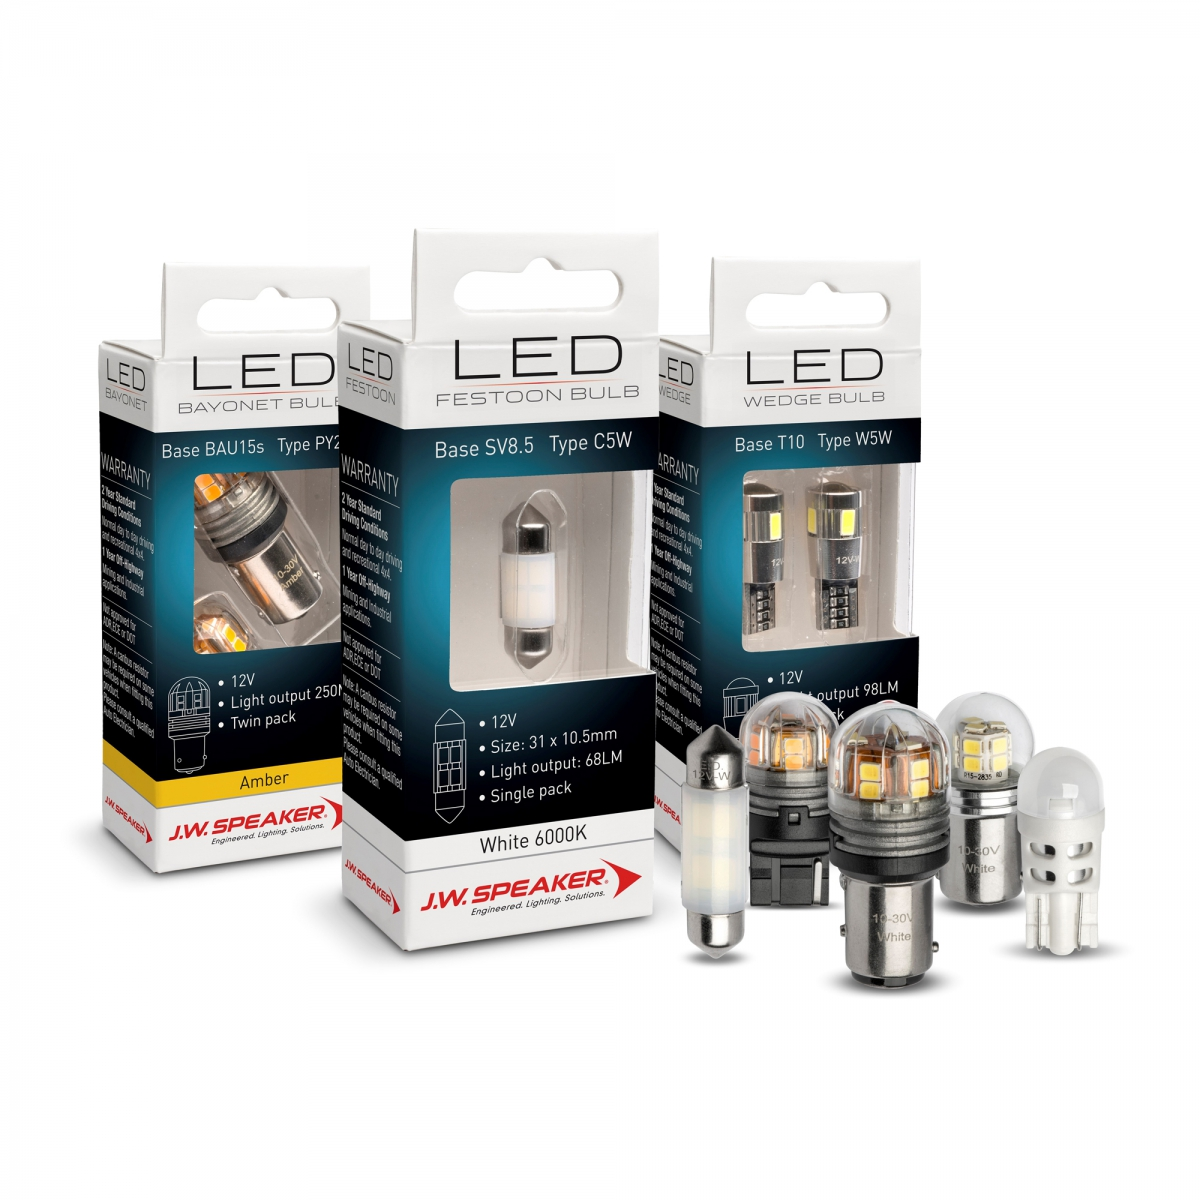 LED Signalling Bulb Range